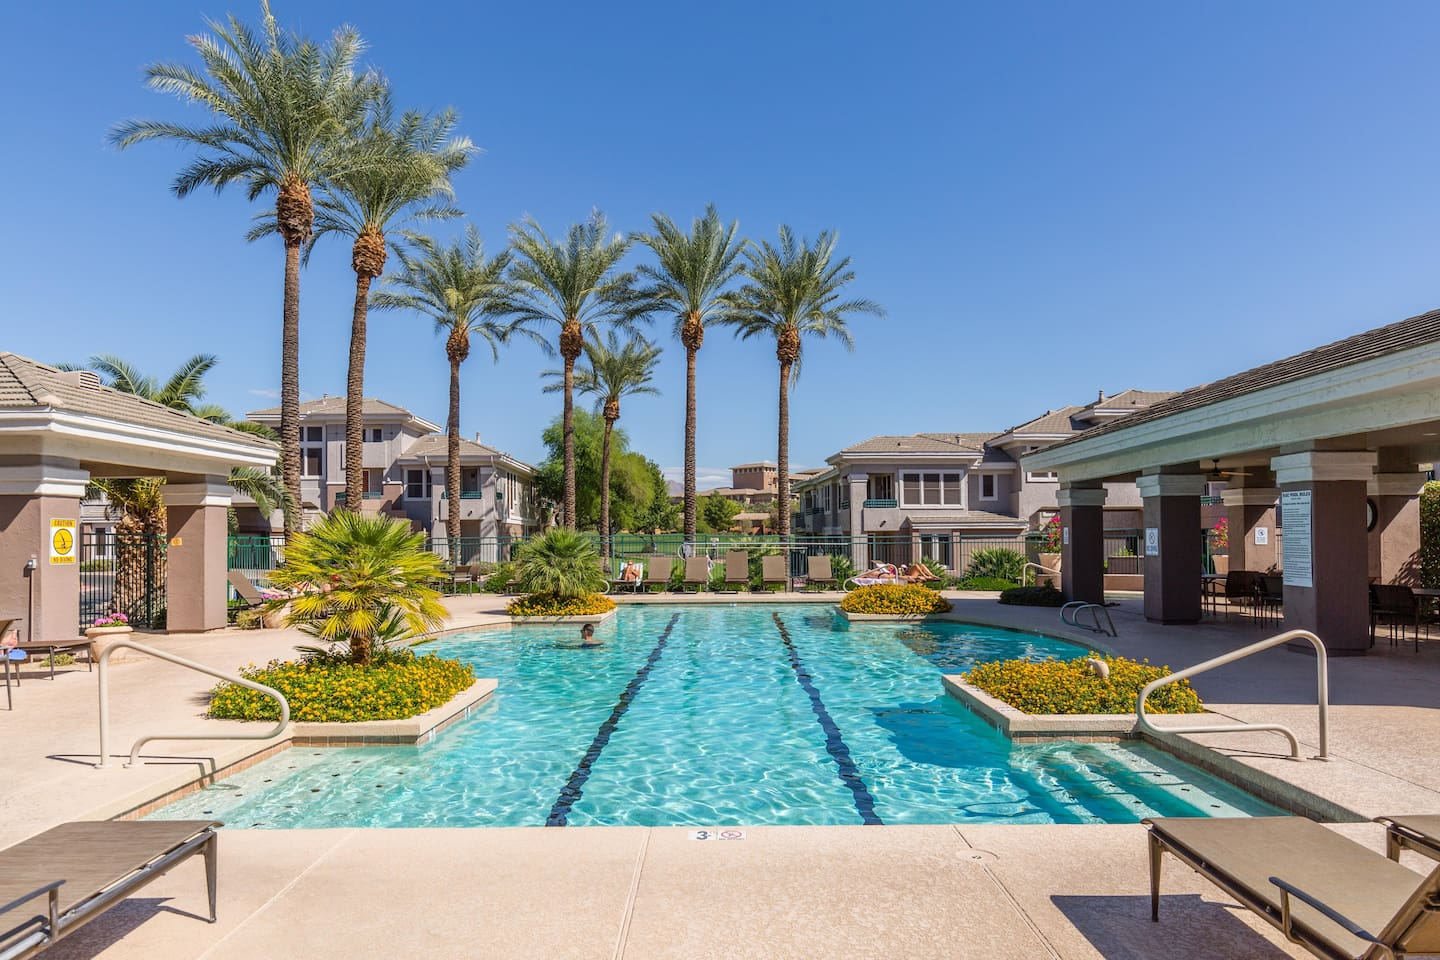 Pool, hot tub, covered dining, grills - pool, lounge chairs, and covered dining are all equipped with misters.